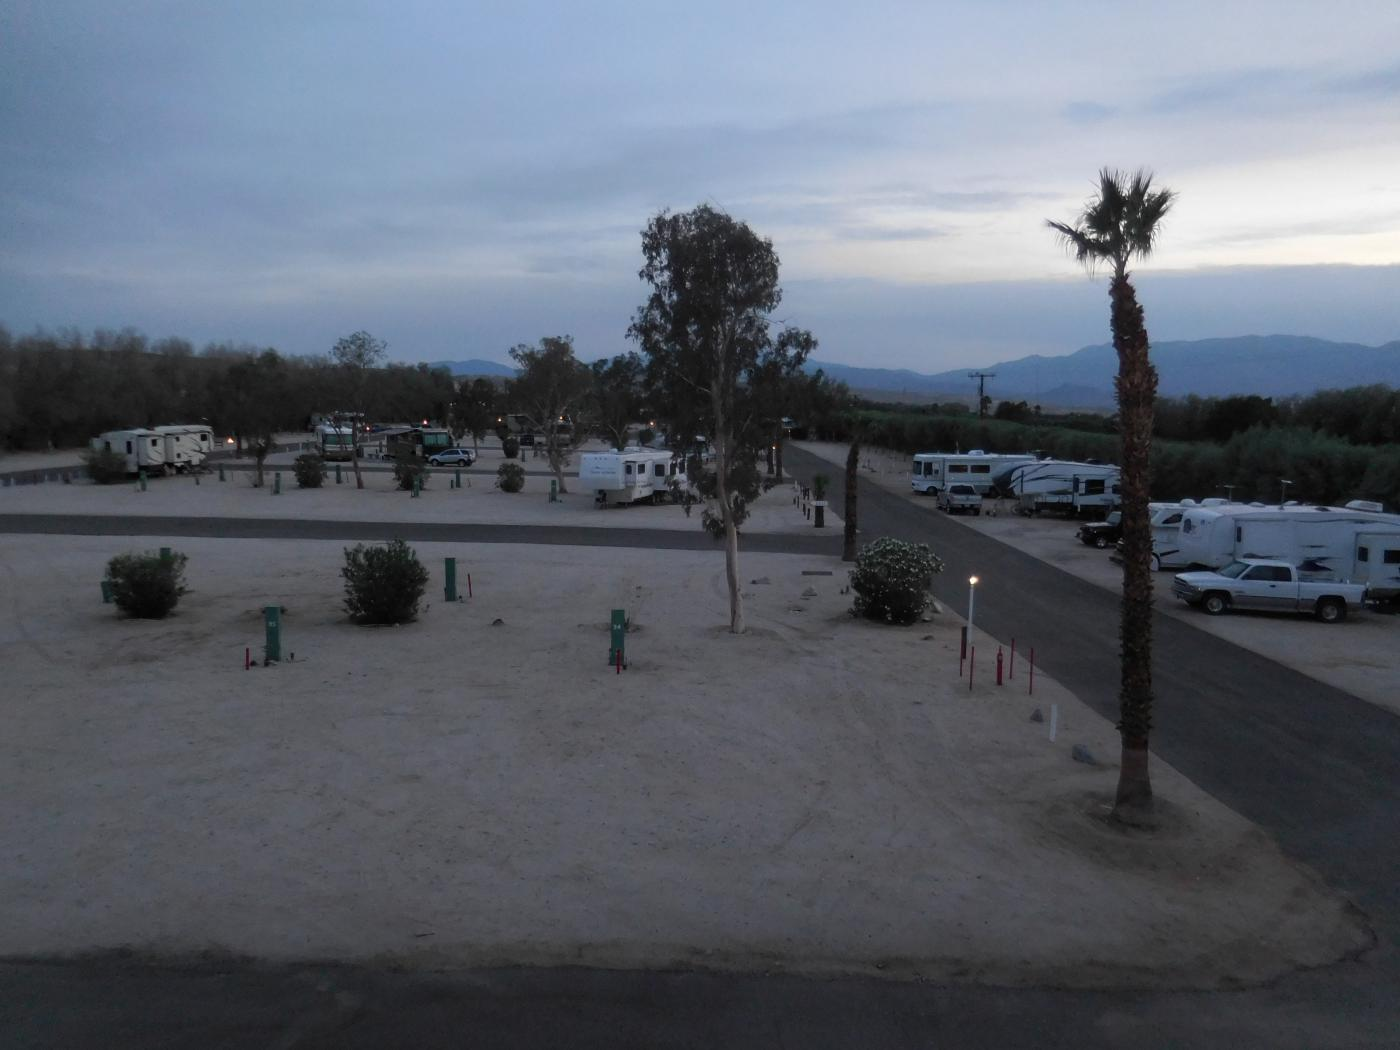 """desert hot springs dating site For a wonderful getaway, or a beautiful, affordable place to live, visit desert hot springs you'll see why it's """"clearly above the rest search site: go."""